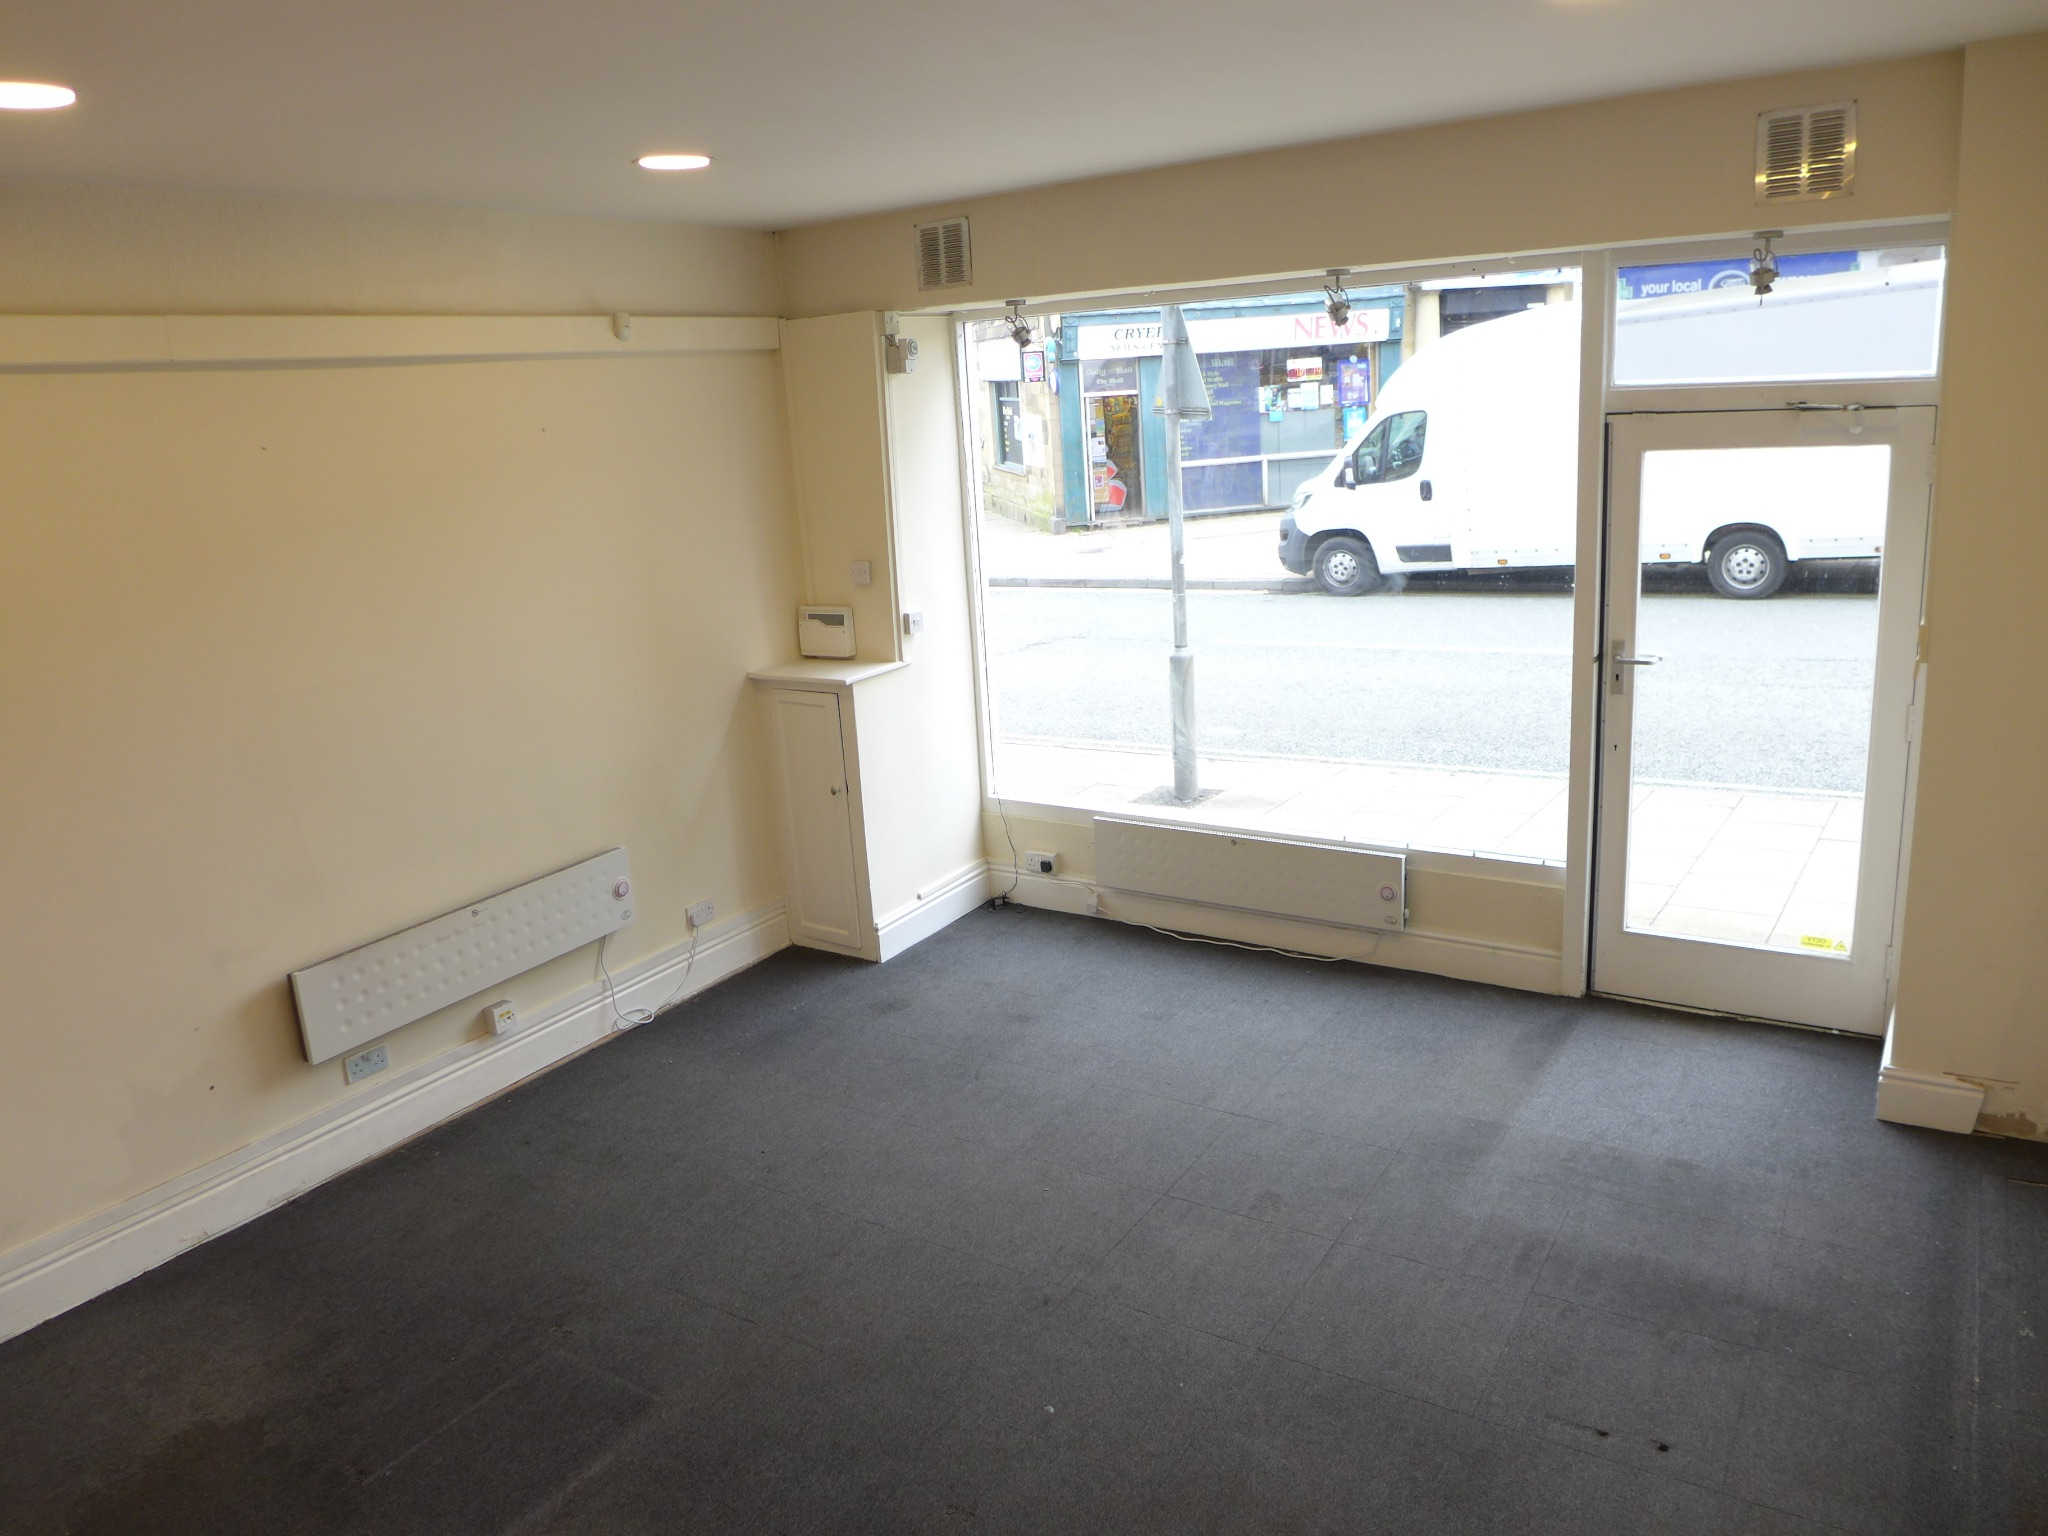 Empty Retail Premises For Sale in Calderdale - Photograph 4.